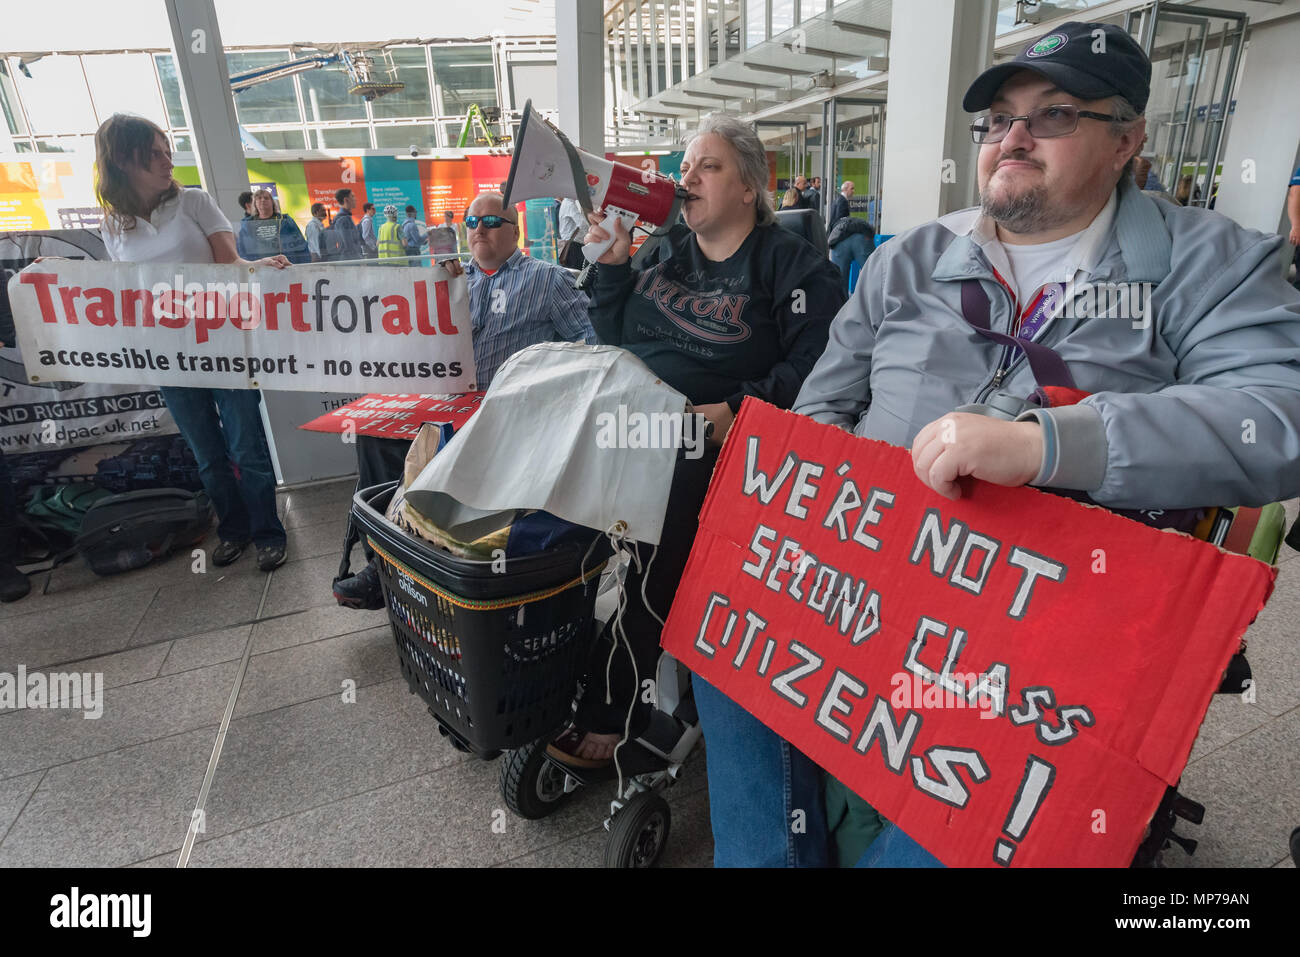 London, UK. 21st May 2018. A protester in a wheelchair speaks at the 'People's Picket' by disabled rail passengers from Disabled People Against Cuts along with the Association of British Commuters and RMT members outside London Bridge station. GTR uses a staff training guide in which they are dehumanised as 'PRM's  and staff are instructed to leave wheelchair users on the platform, even when they have arranged and pre-booked a journey. Today's timetable changes include a reduced stopping time at stations. Credit: Peter Marshall/Alamy Live News - Stock Image